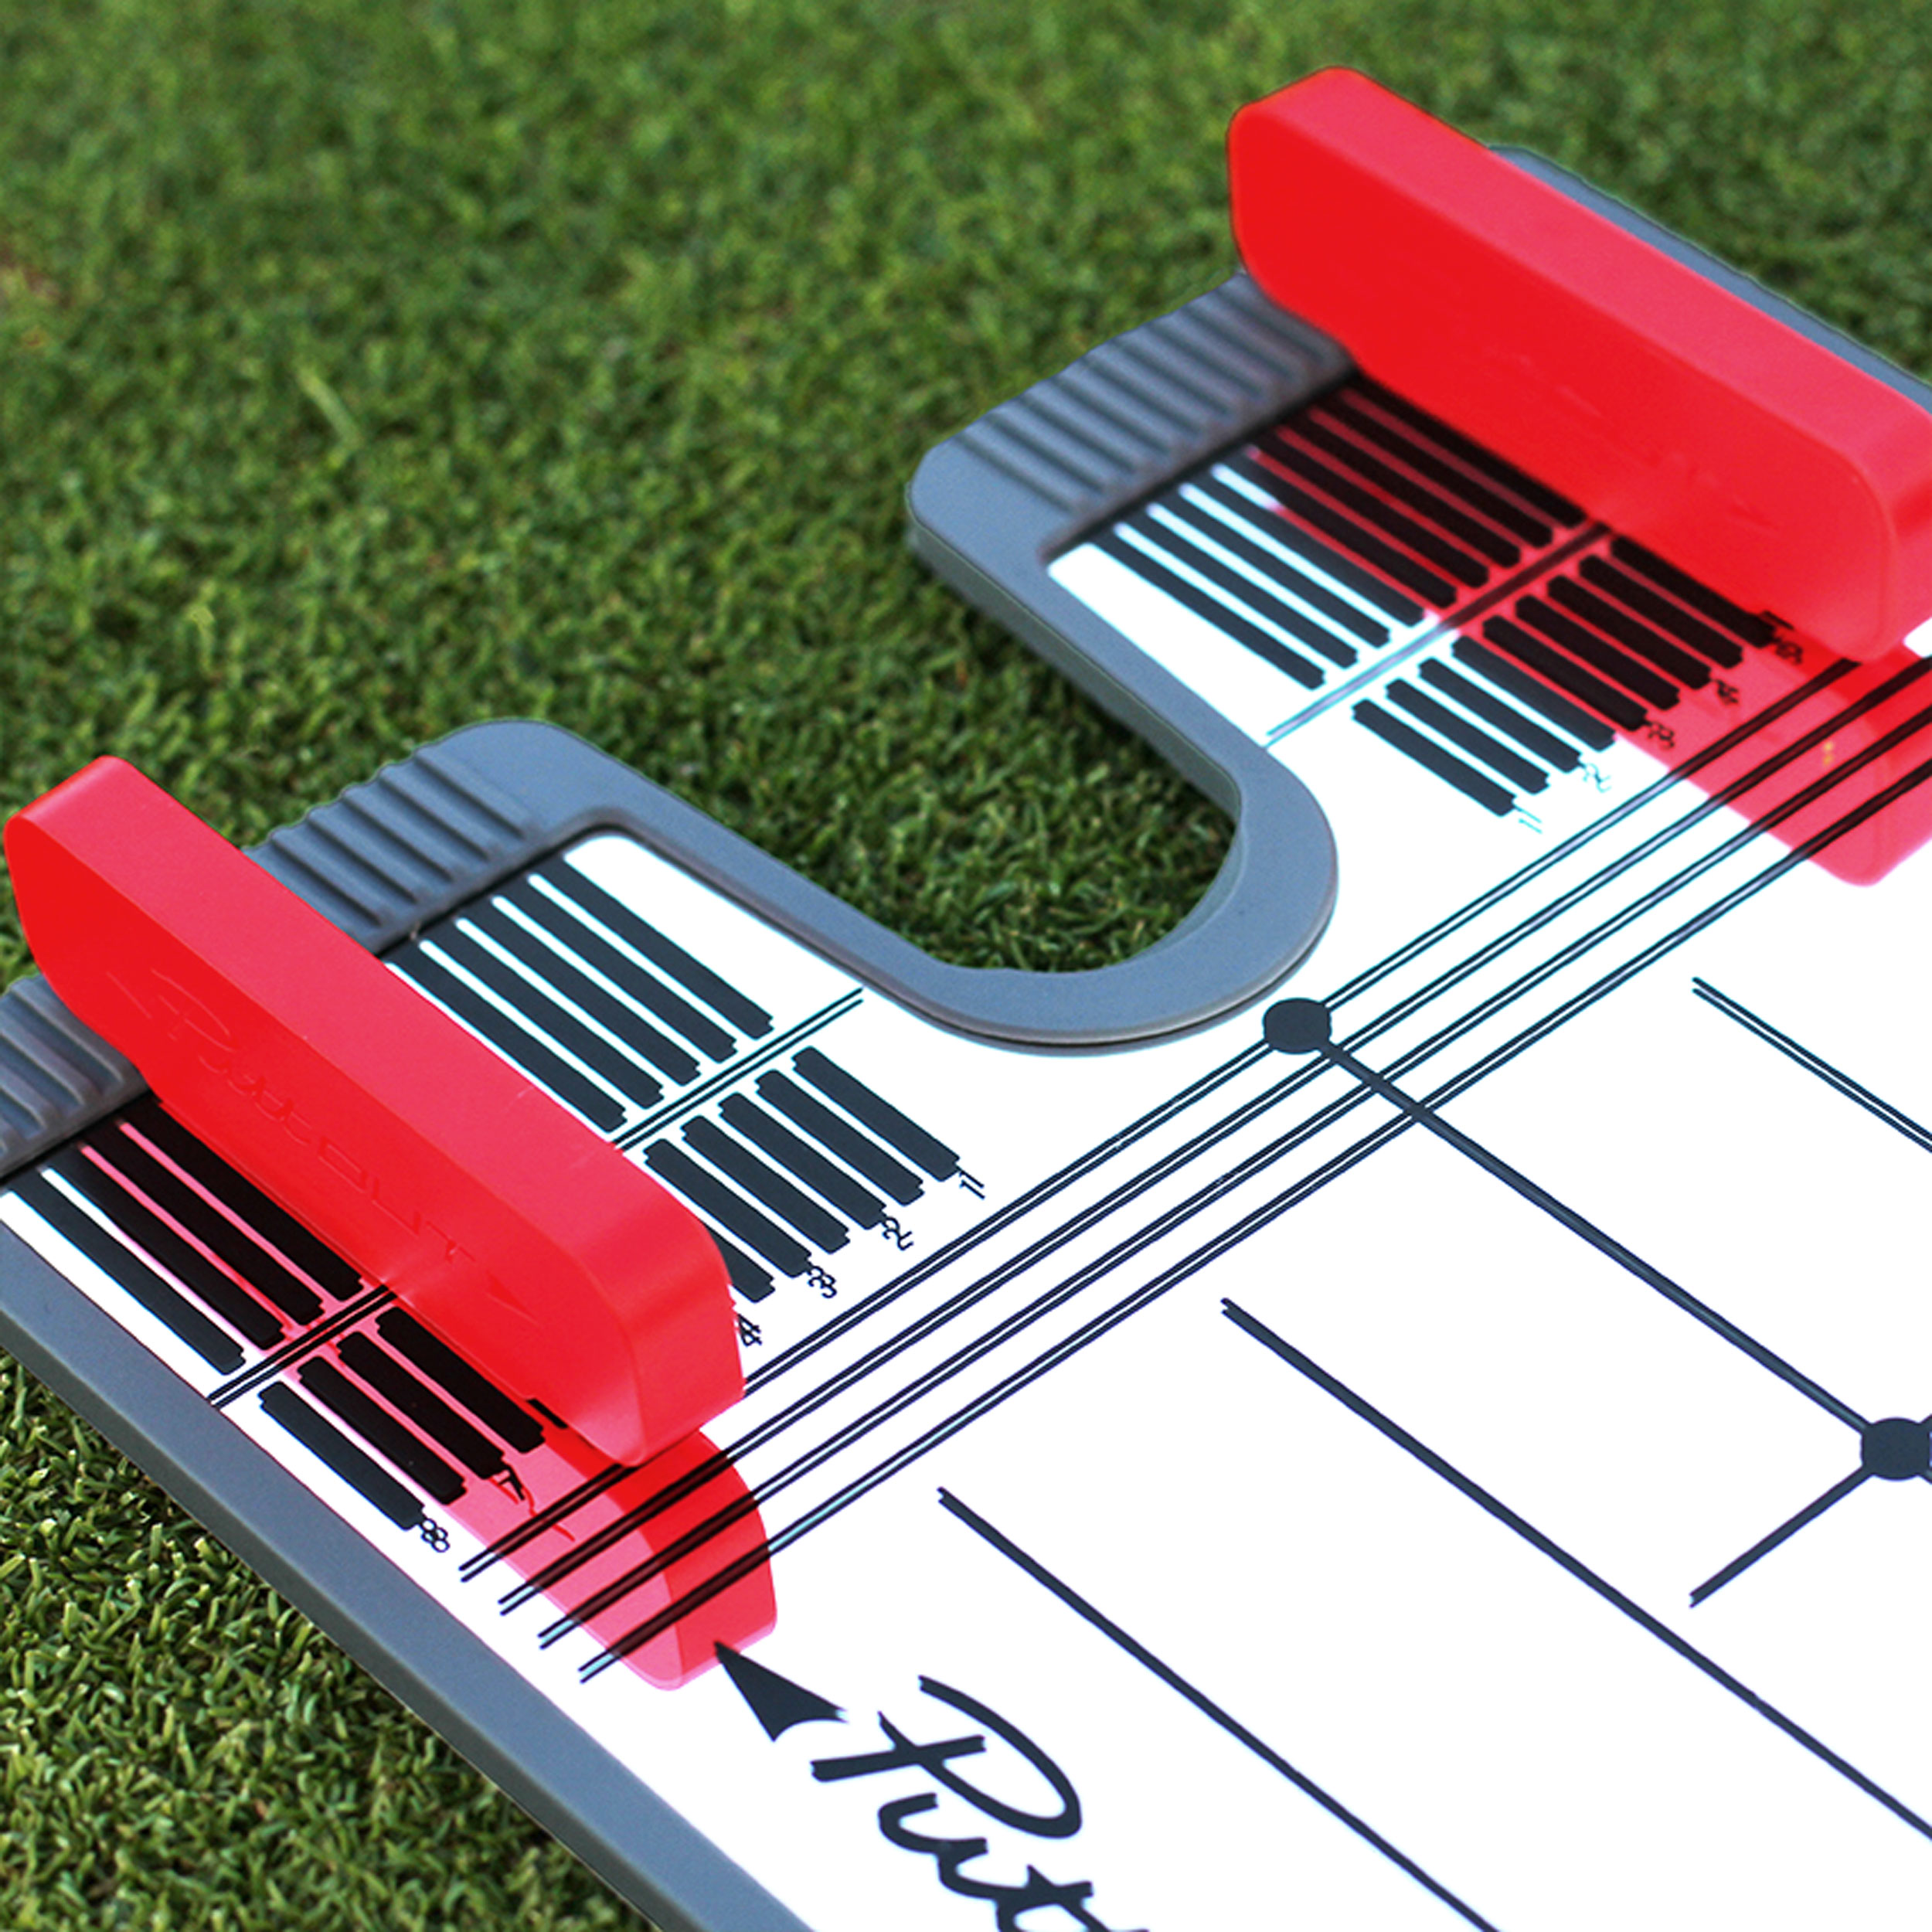 Guided putting - The two vivid alignment guides are adjustable for your putting stroke and can be used as a rail, a gate, a backstop or whatever you best see fit.The guides are 3-inches long, ensuring your stroke remains on a square path for the entire impact section.